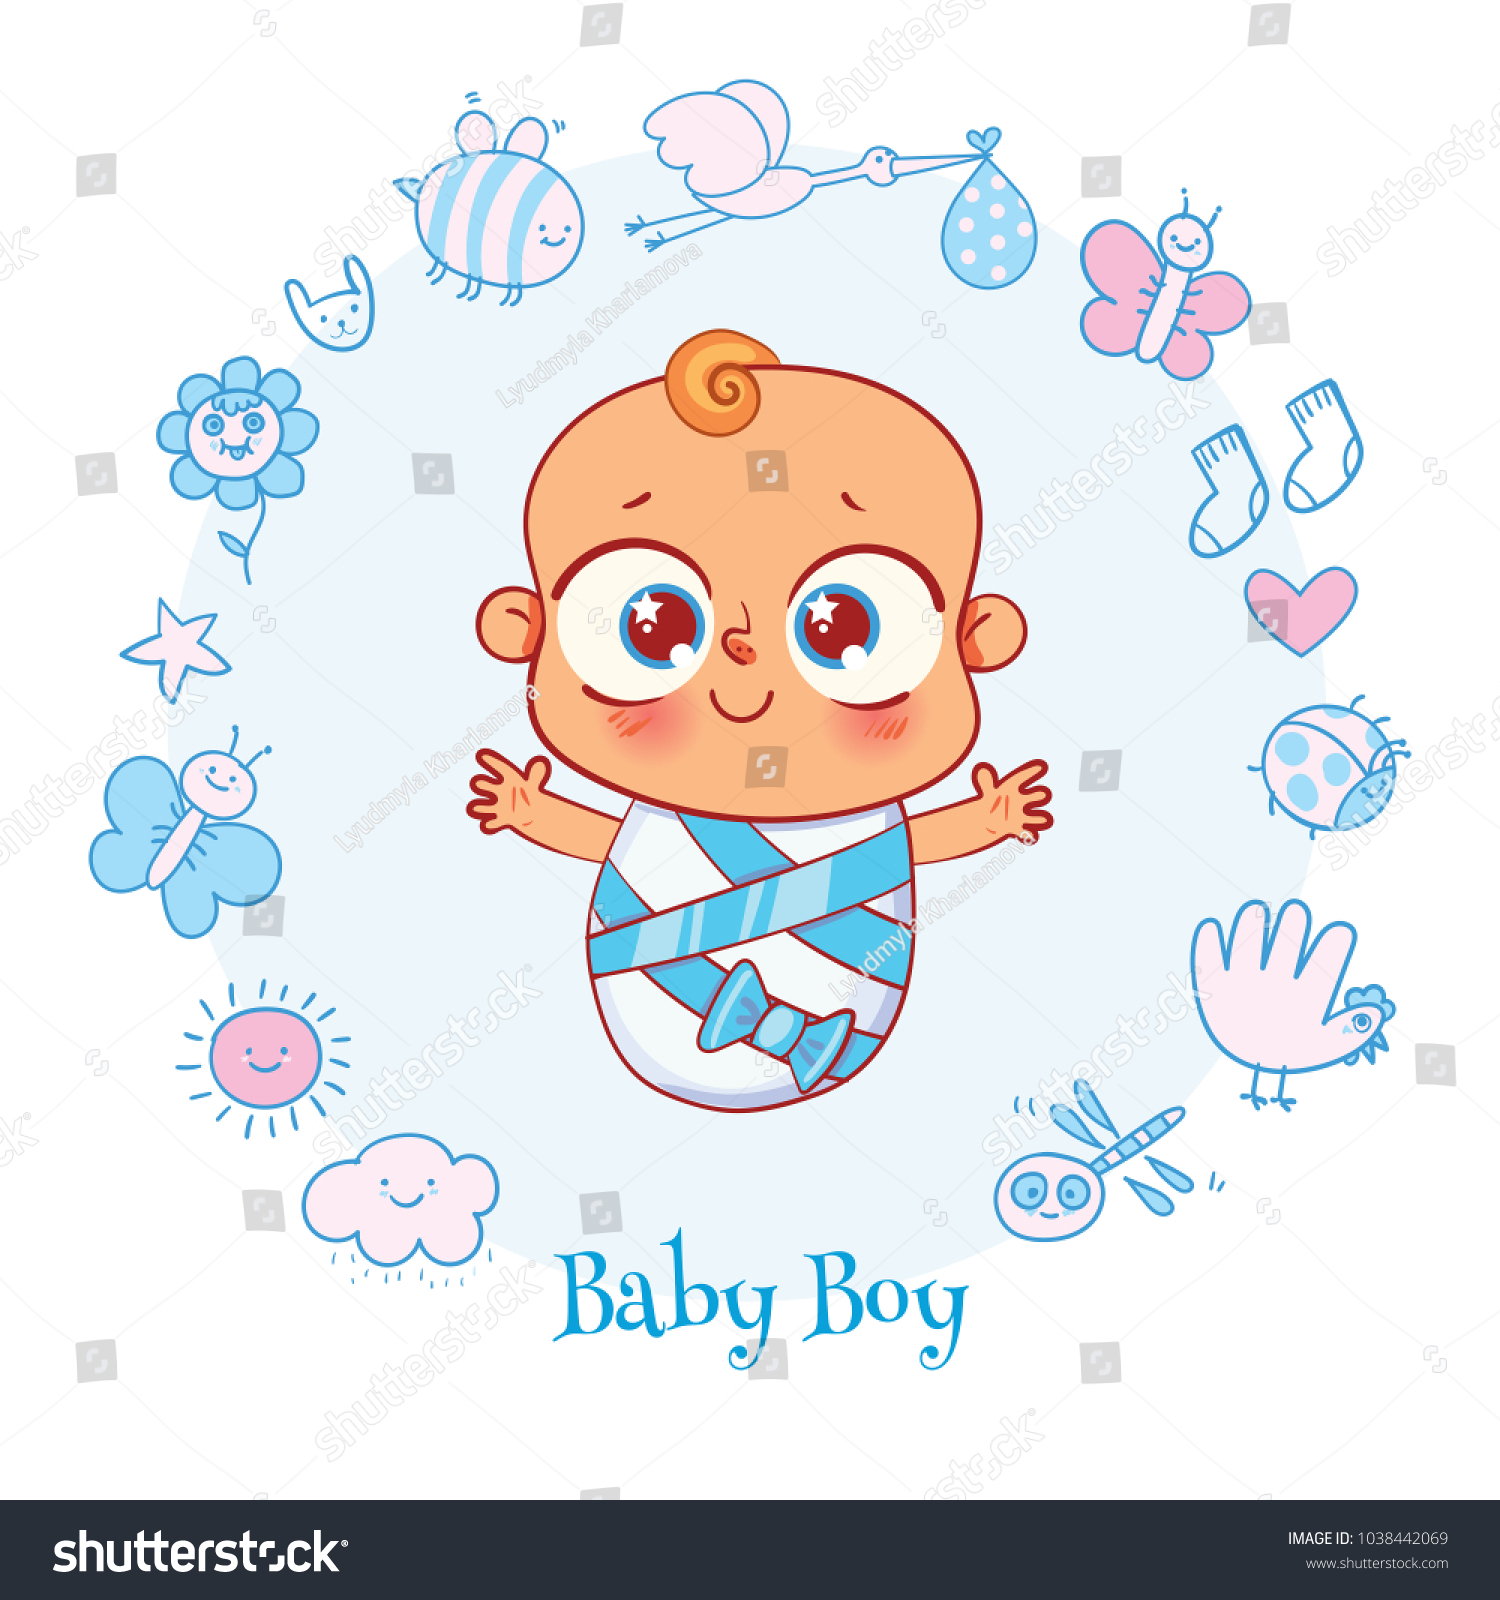 Welcome Baby Invite Greeting Card Boy Stock Vector 1038442069 ...